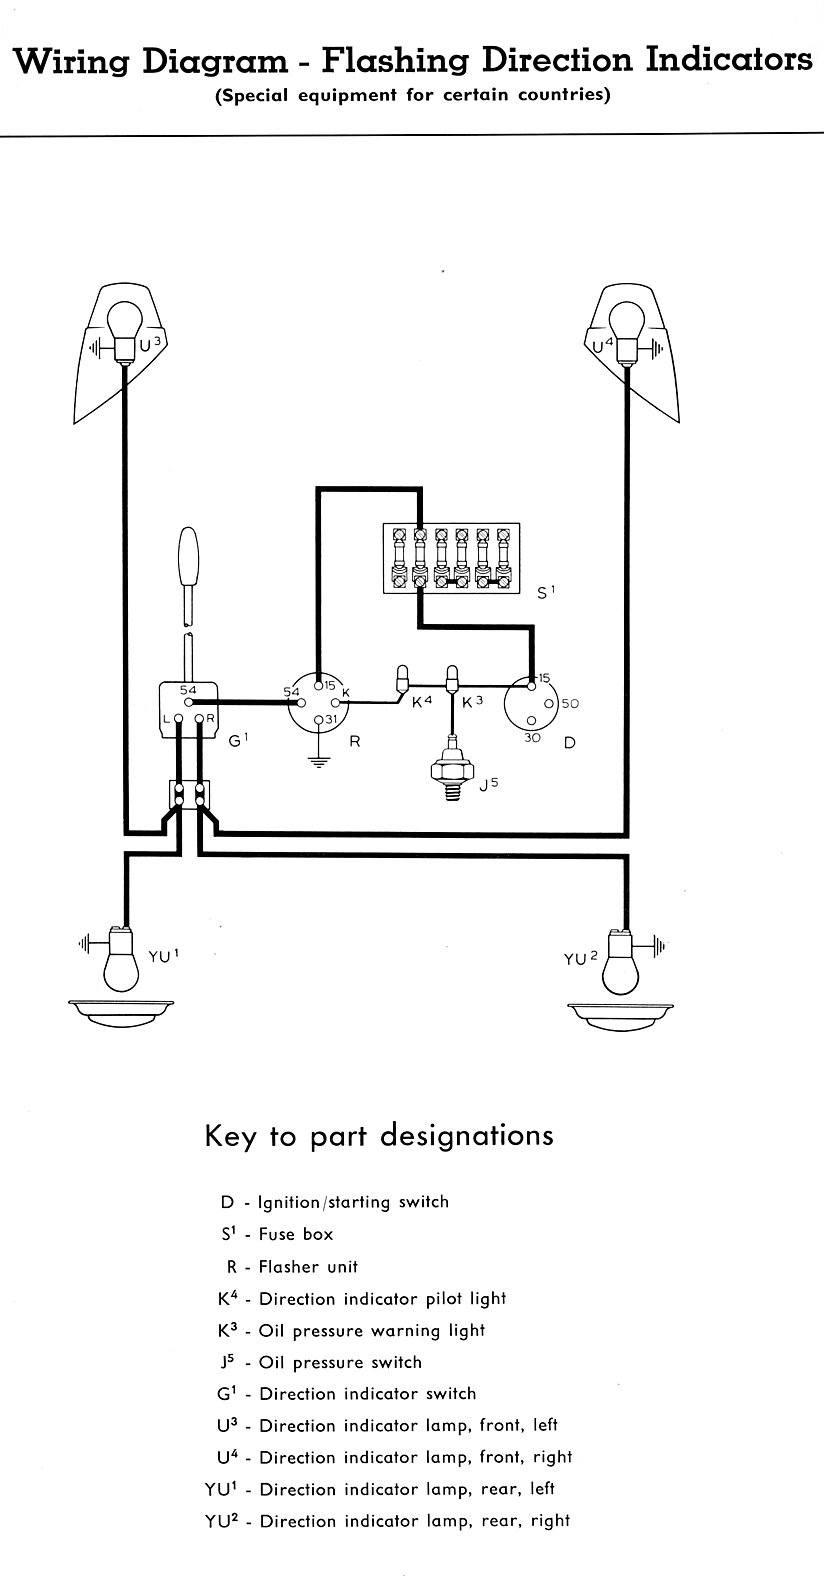 Type 2 Wiring Diagrams 1972 Mercedes Fuse Panel Diagram Turn Signal